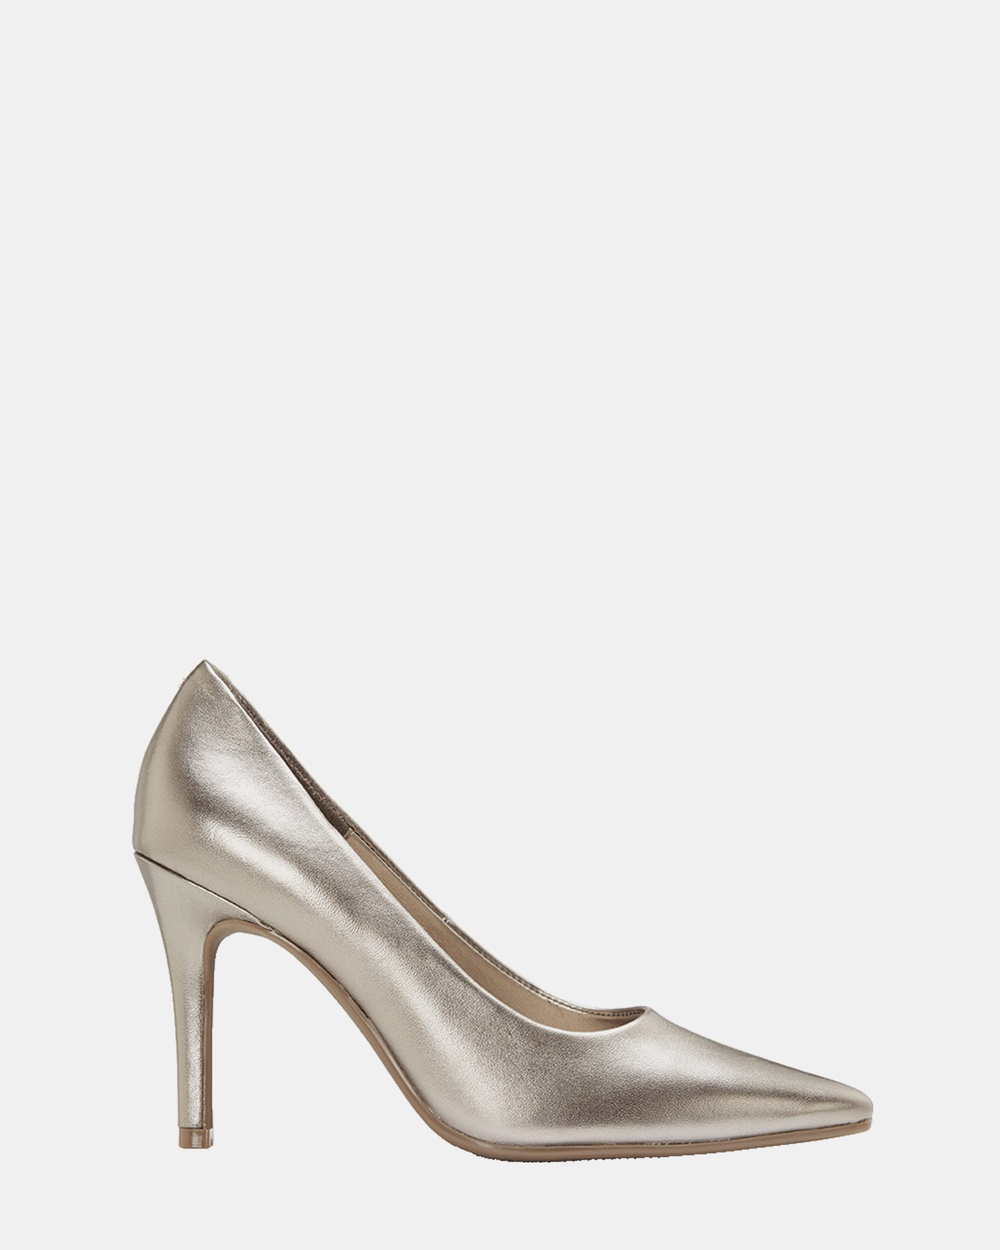 Sandler Sally All Pumps PEWTER Sally